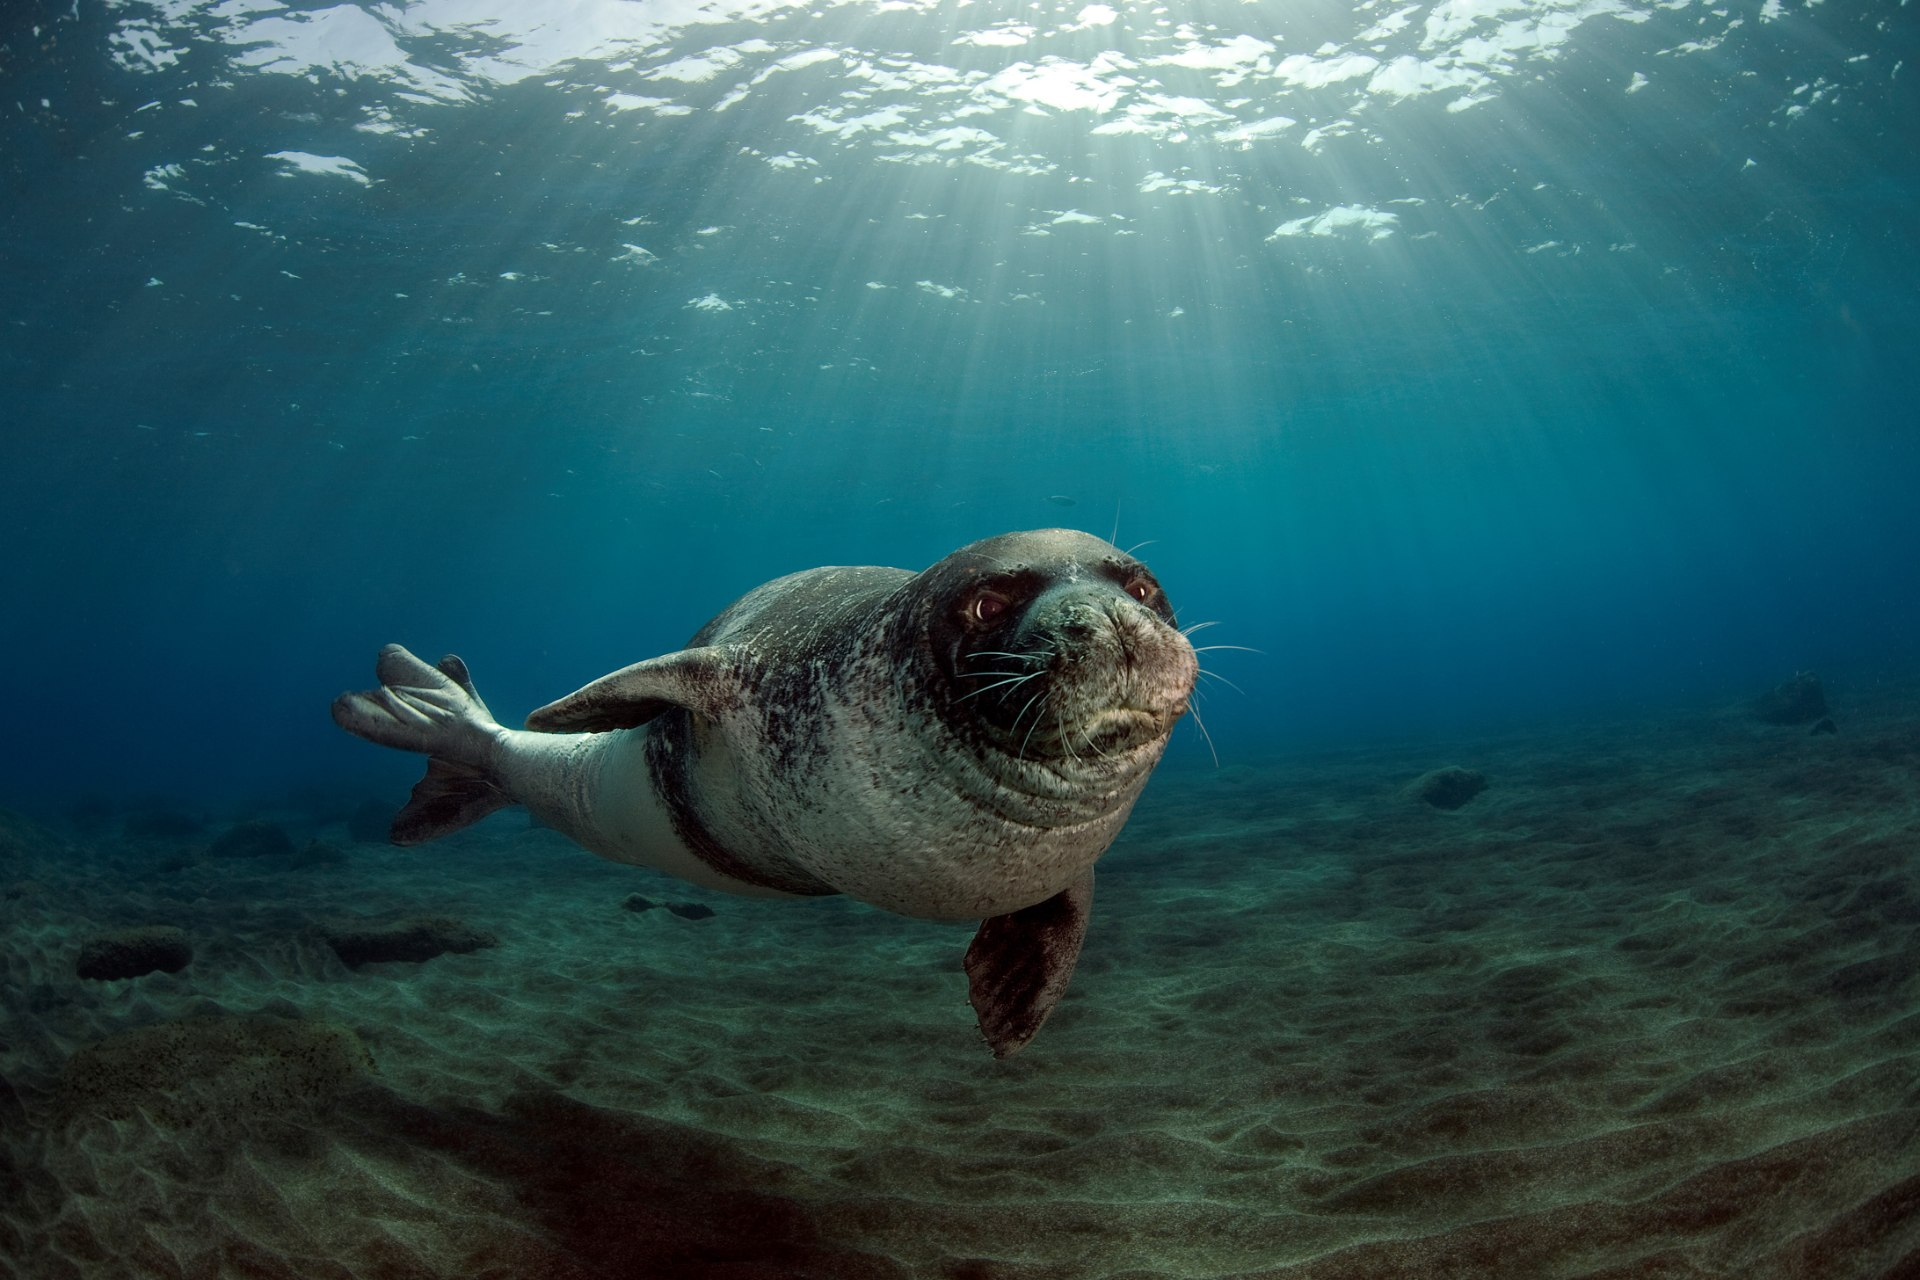 The Mediterranean Monk Seal reduces its risk of extinction and there are glimmers of hope thanks to international cooperation